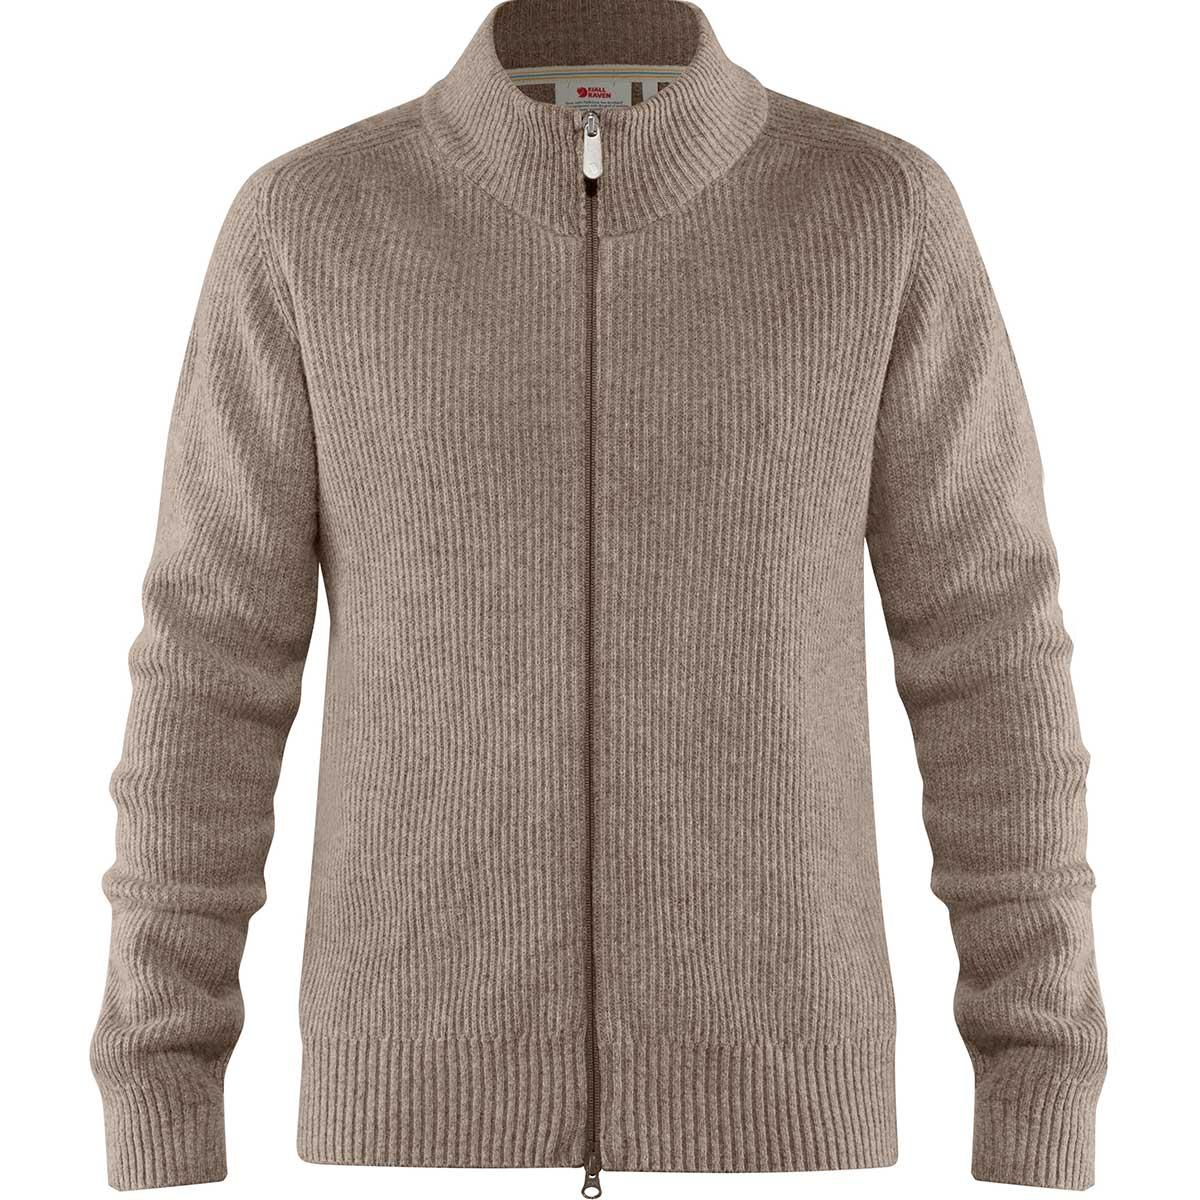 Fjallraven men's Greenland Re-Wool Cardigan in Driftwood front view